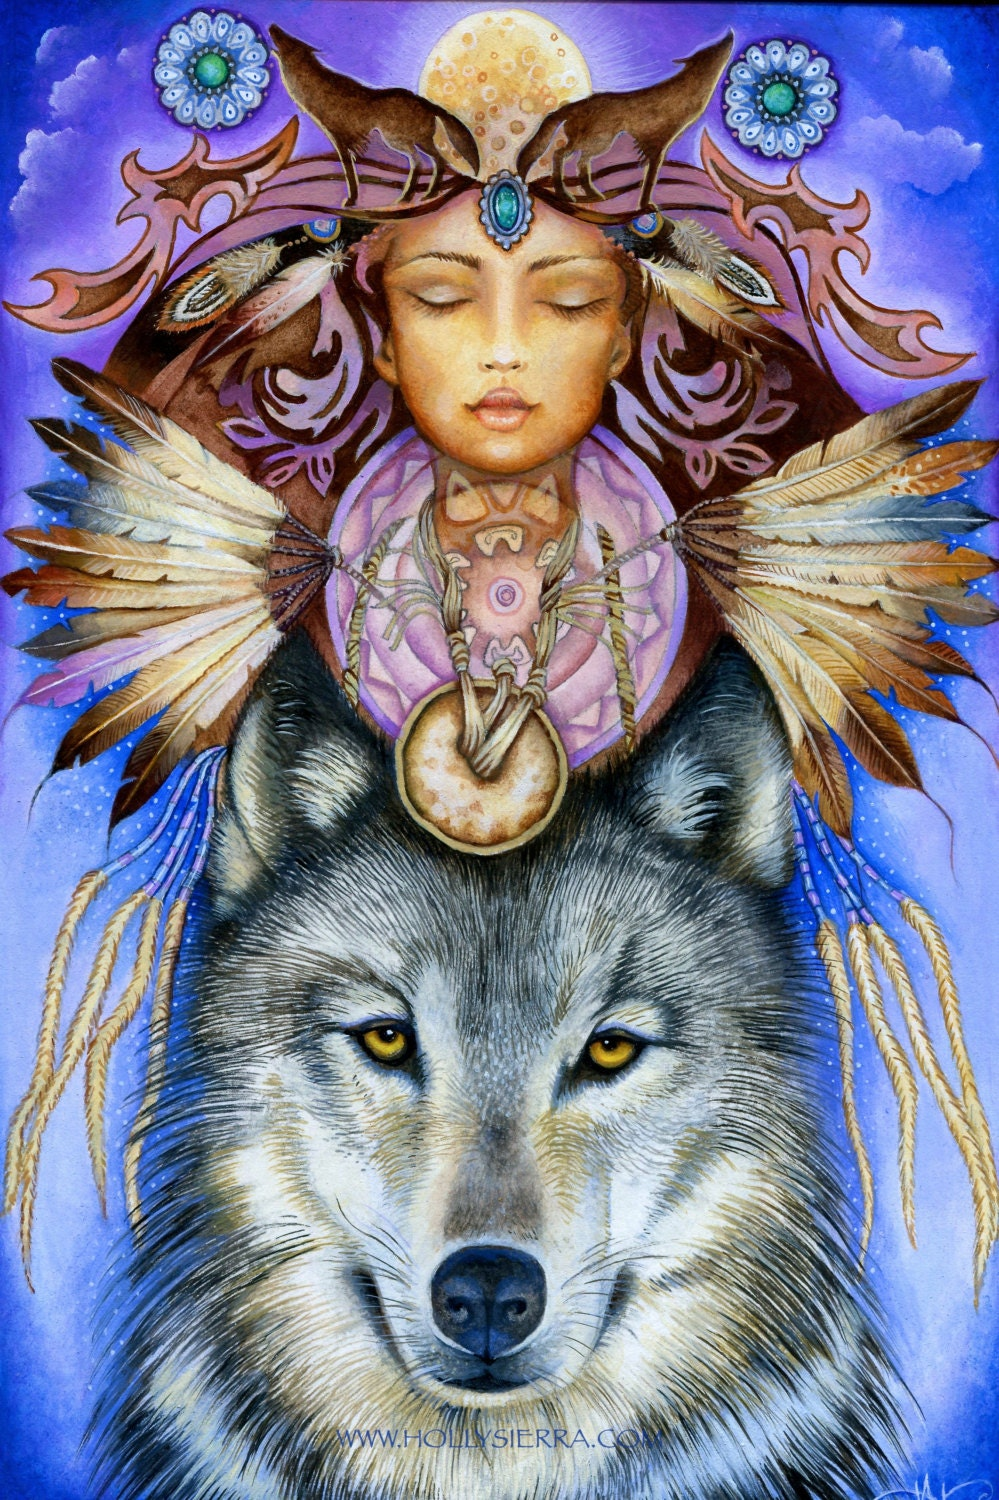 It American Teen Is: Wolf Spirit A Native American Shapeshifter